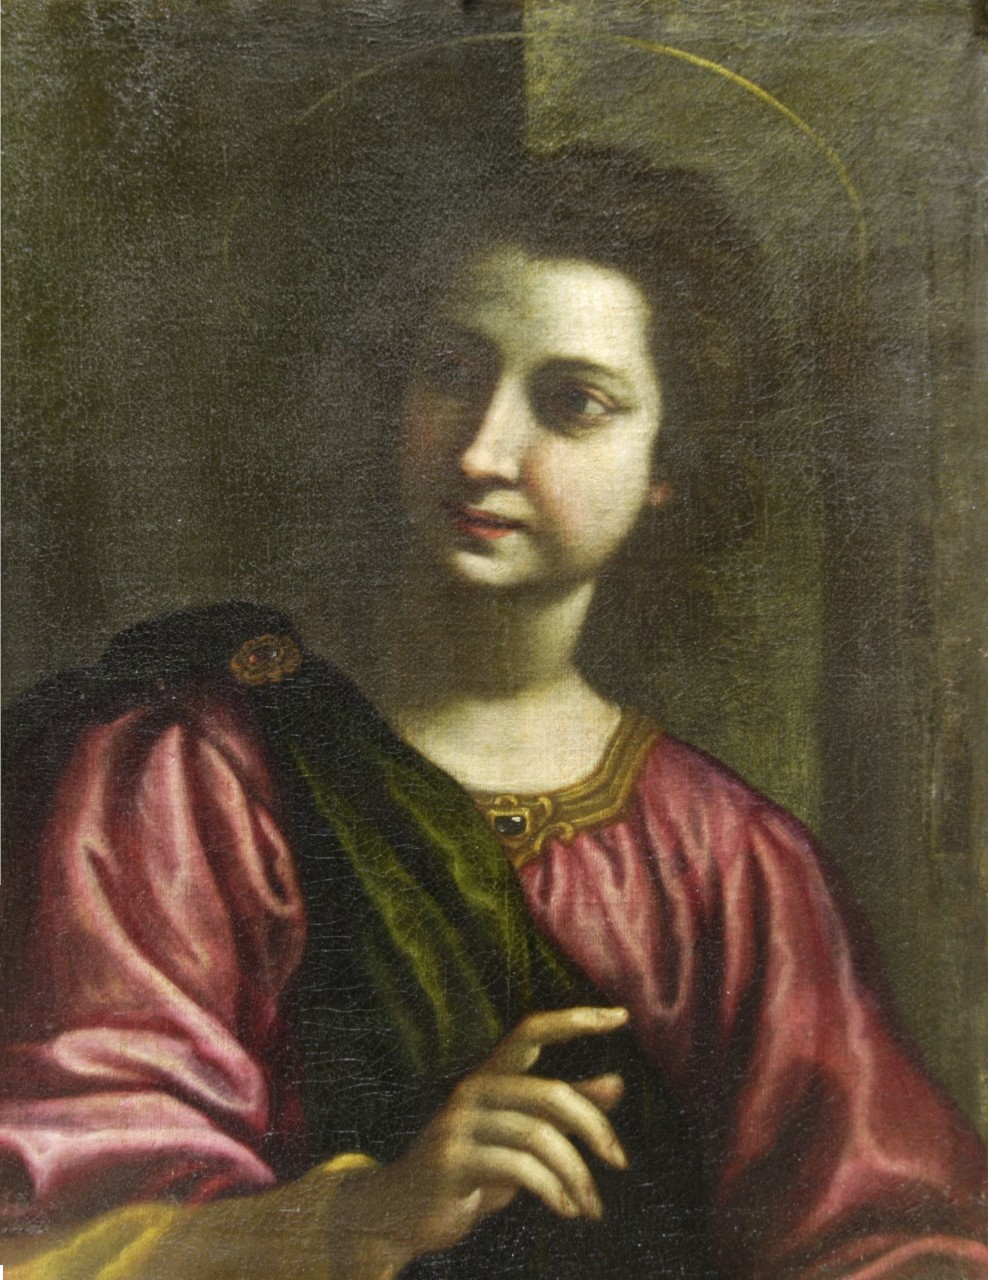 Francesco Curradi